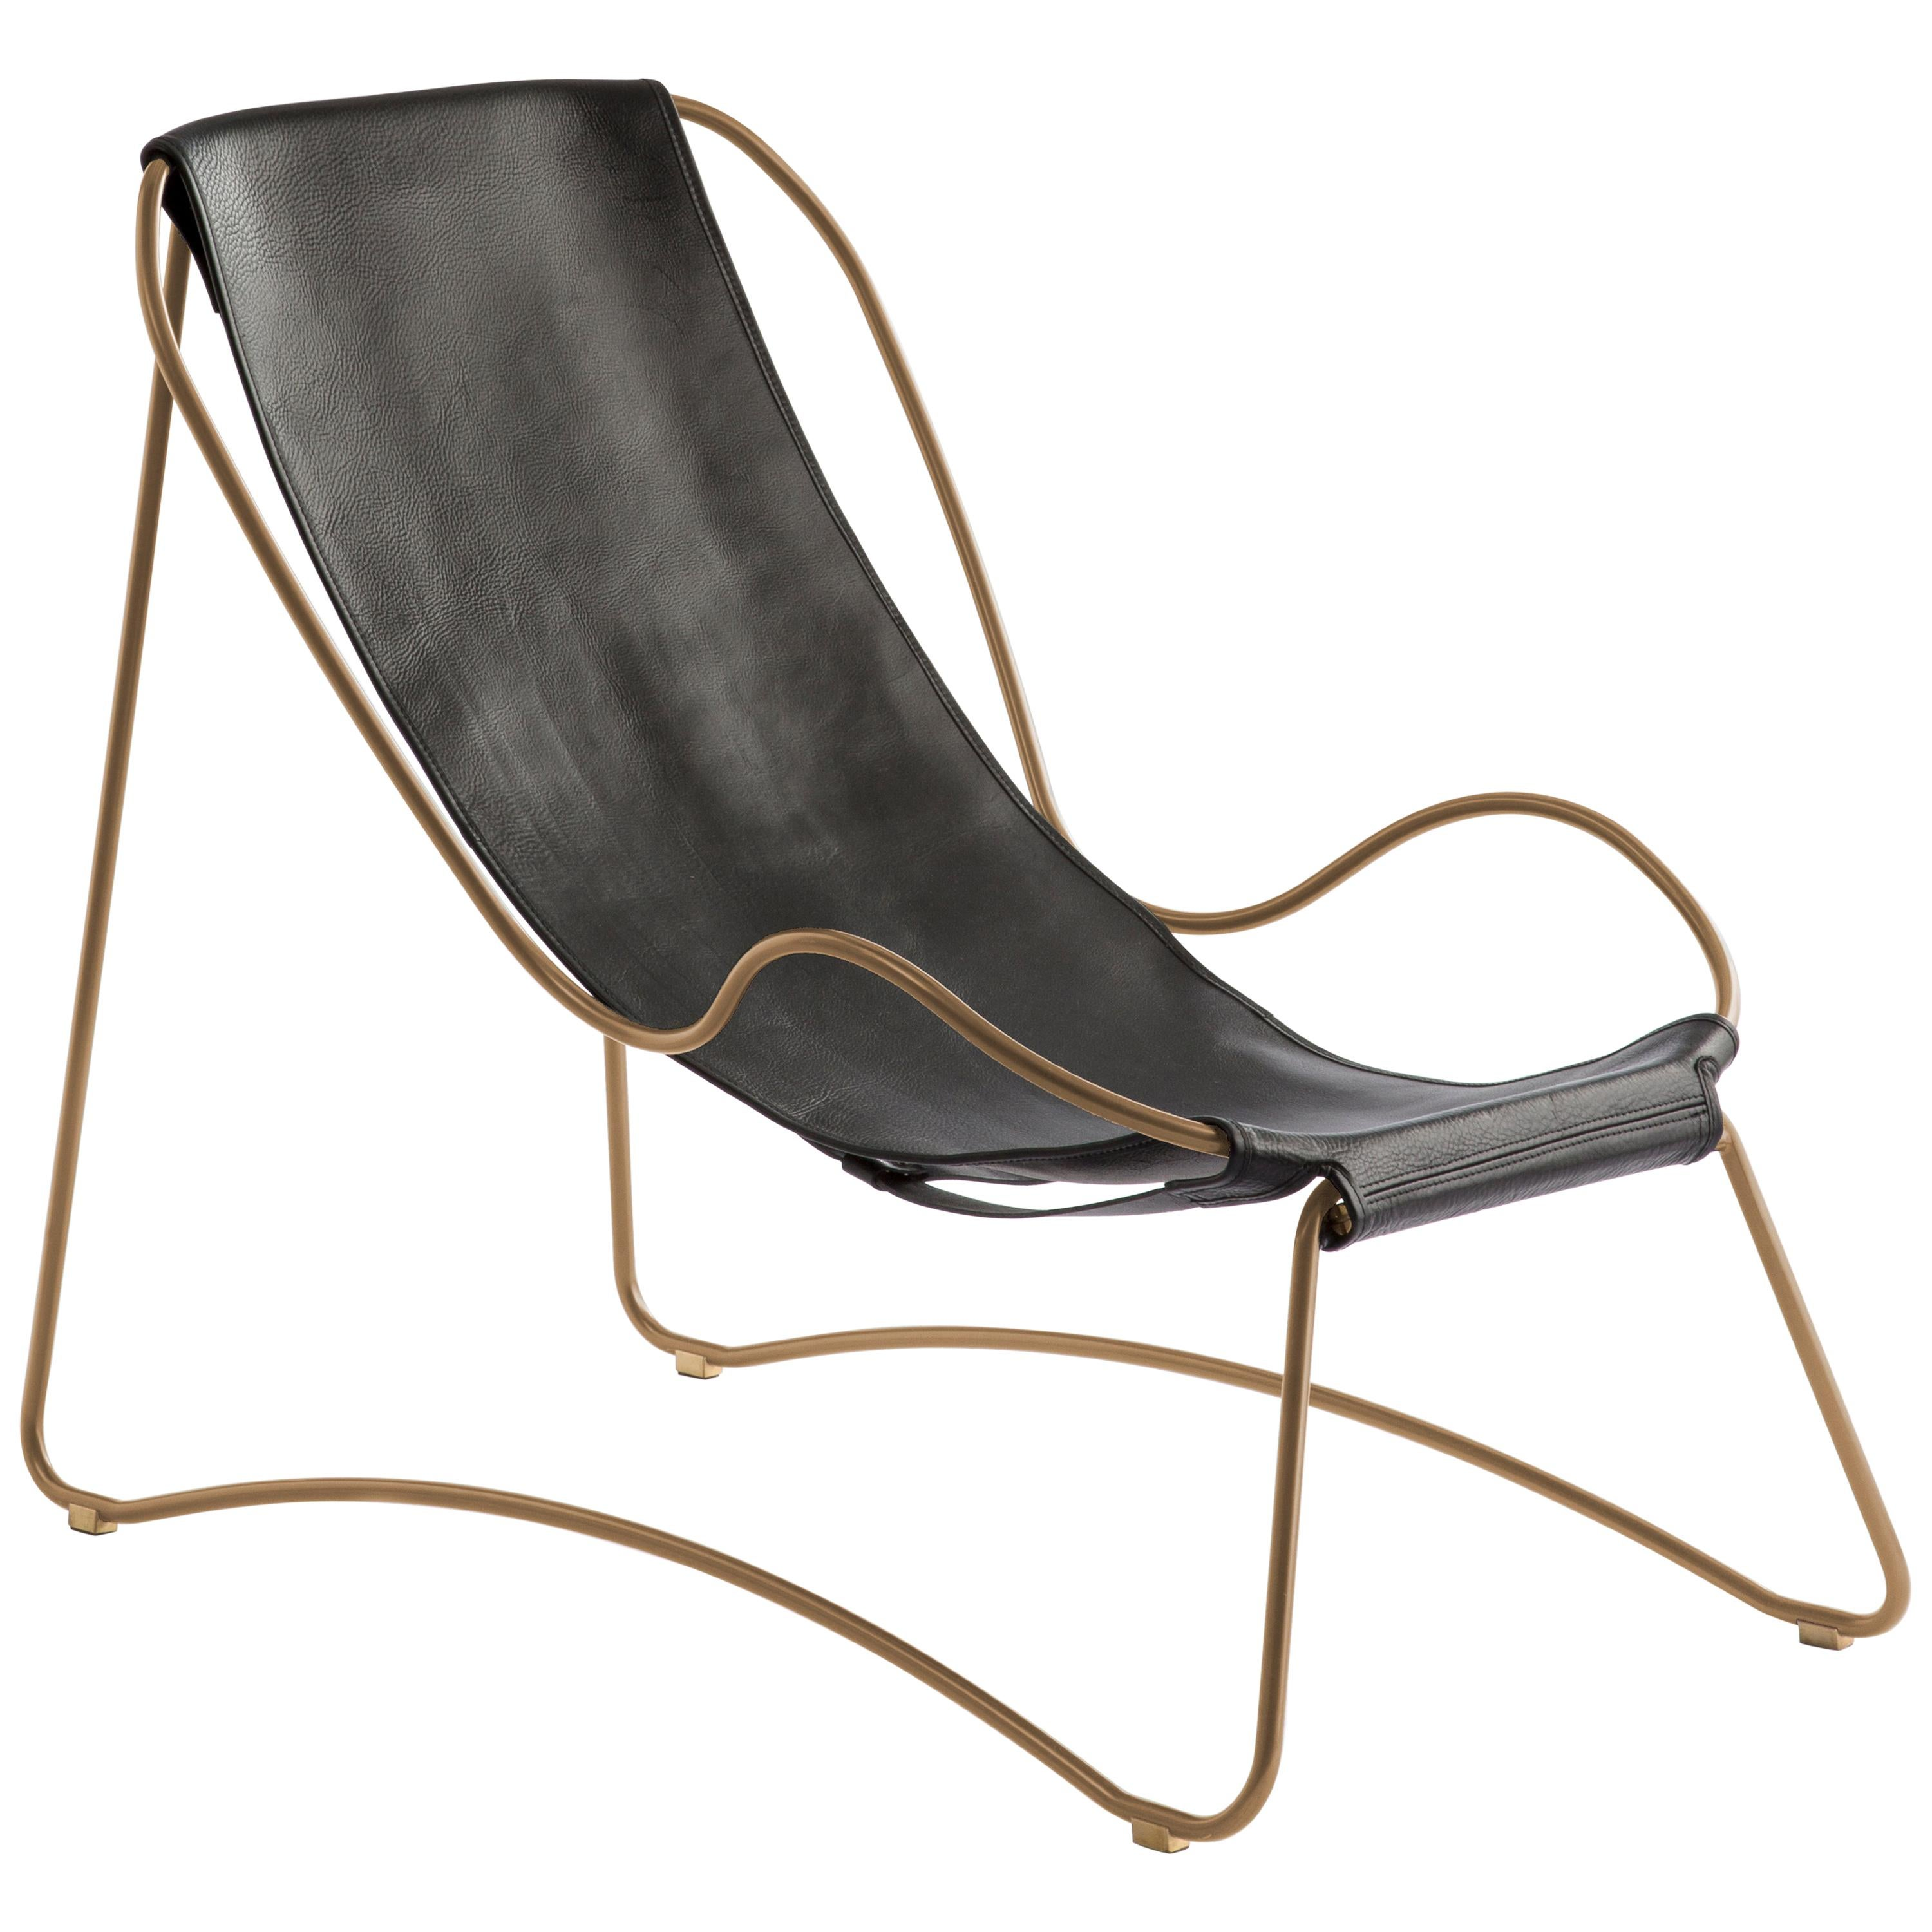 Chaise Longue, Brass Steel and Black Saddle Leather,  Contemporary Style